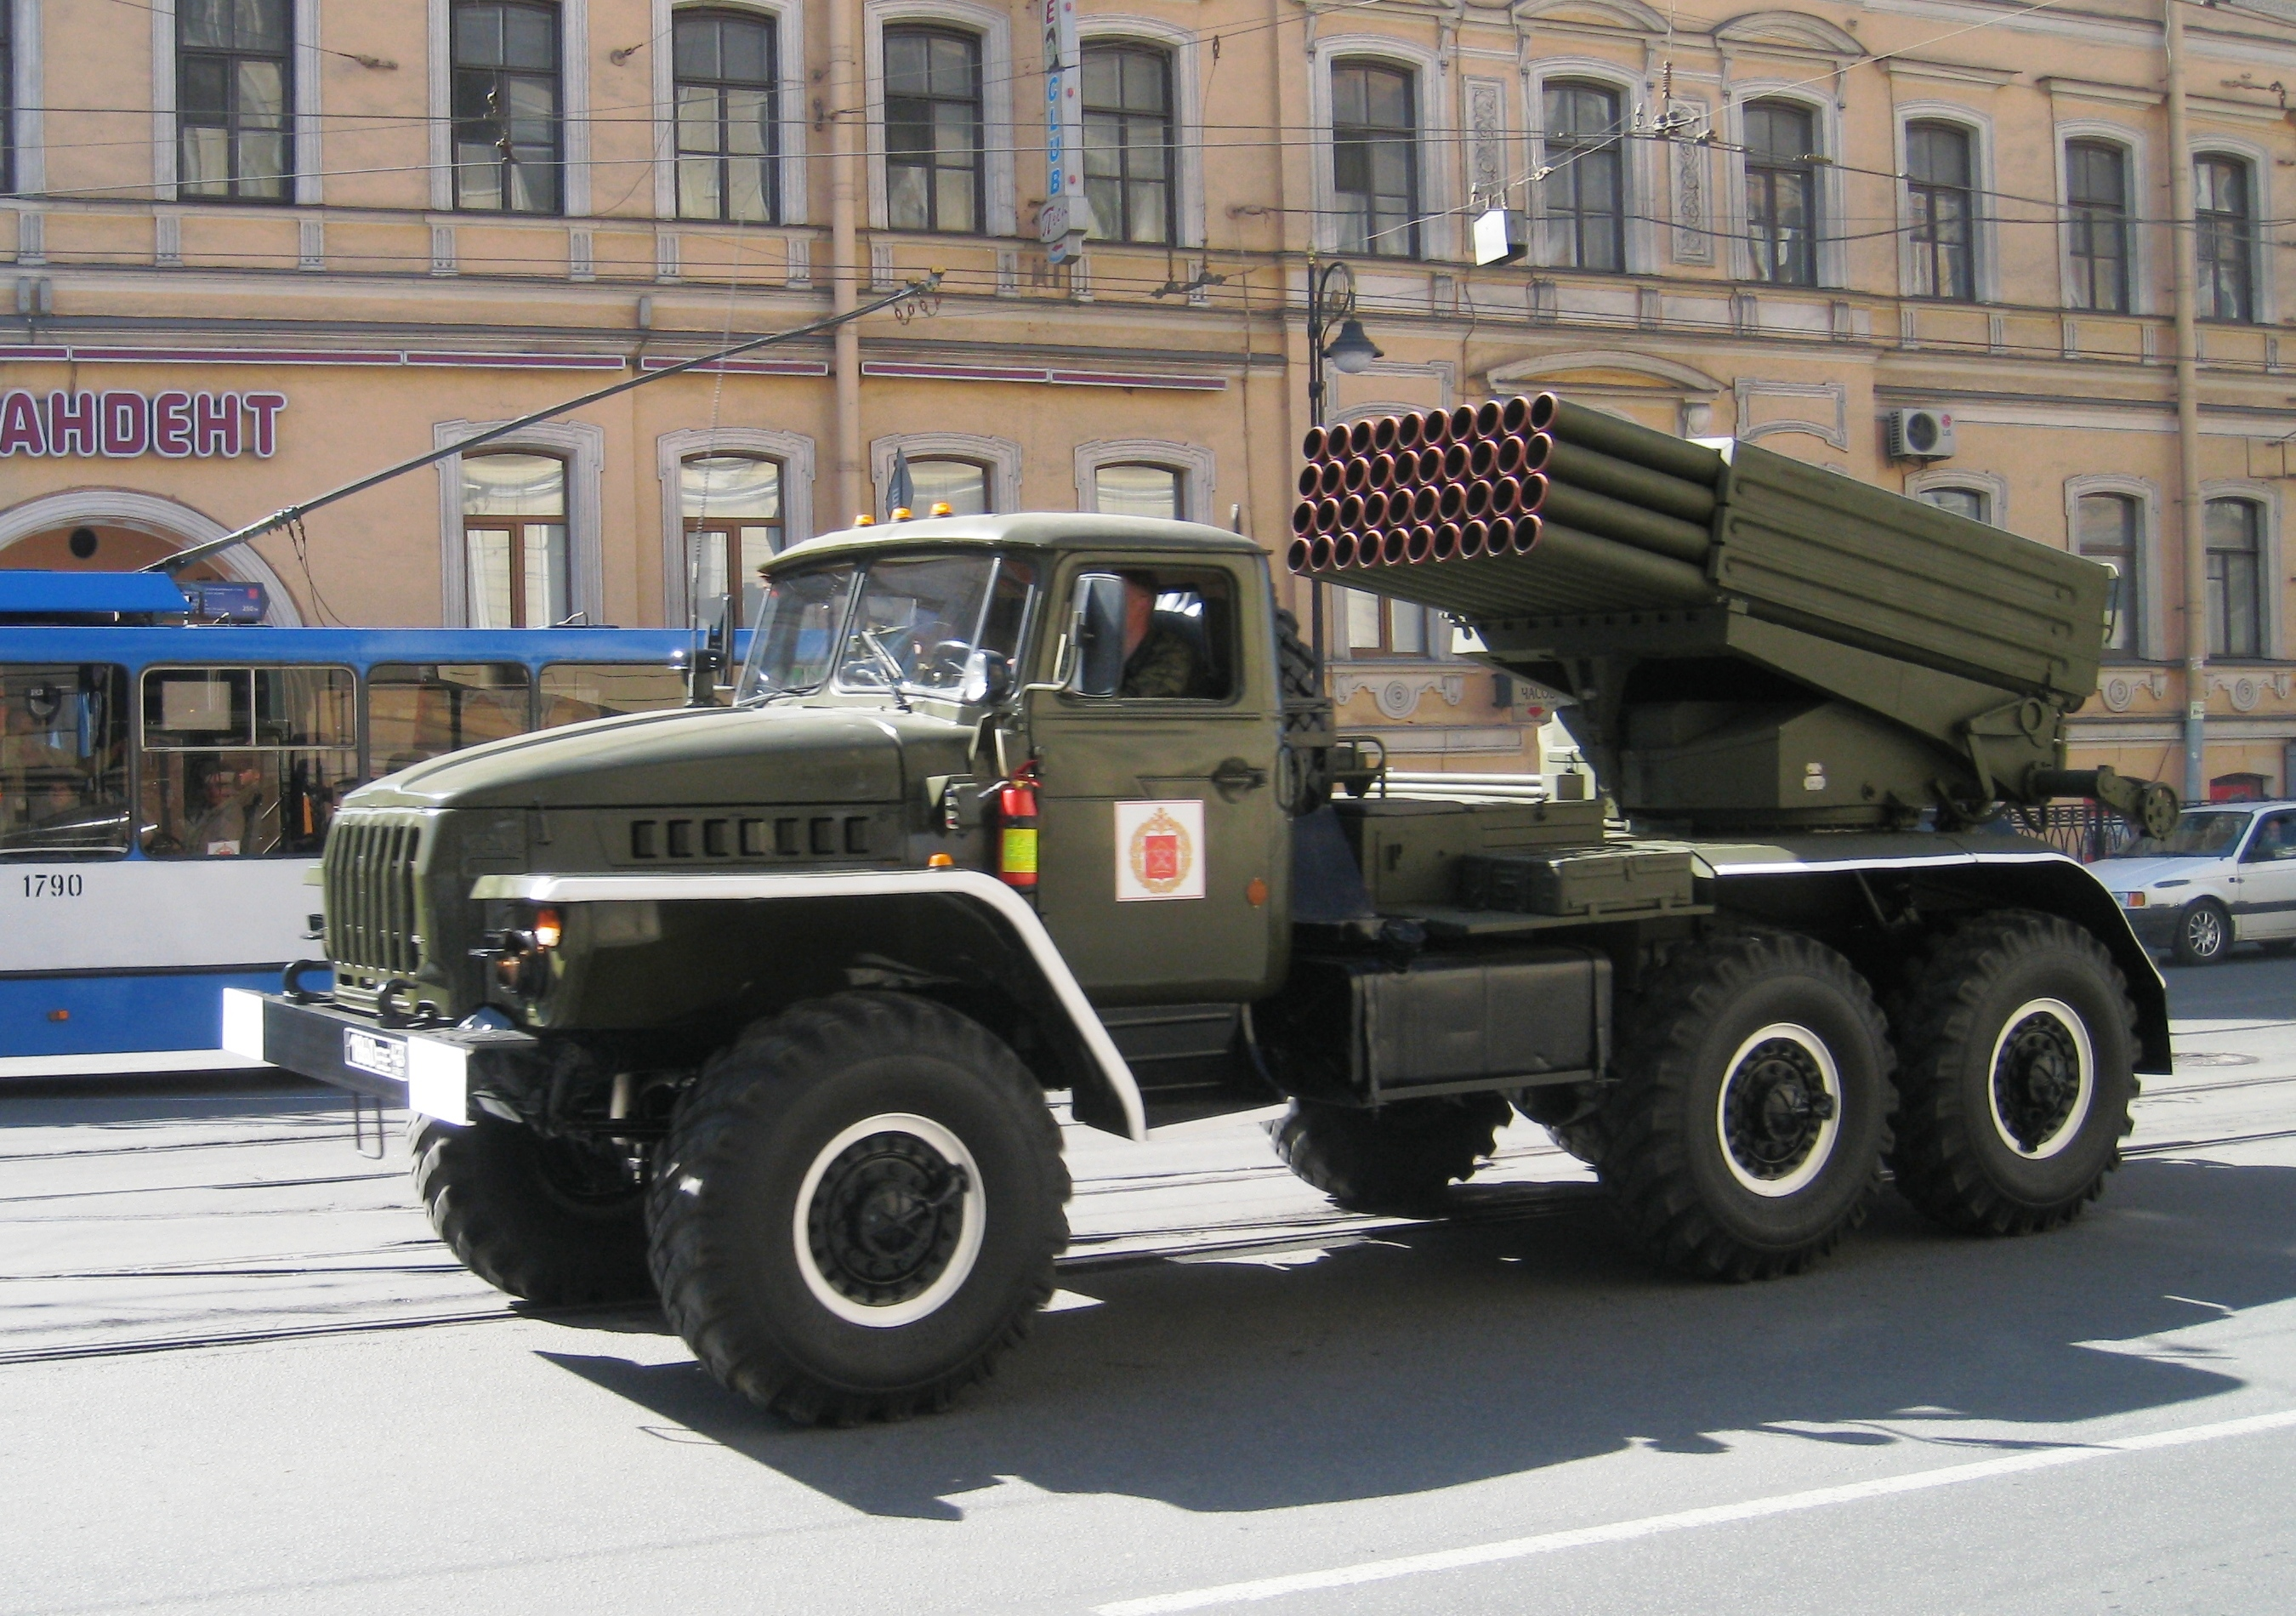 Russian_BM-21_Grad_in_Saint_Petersburg.J